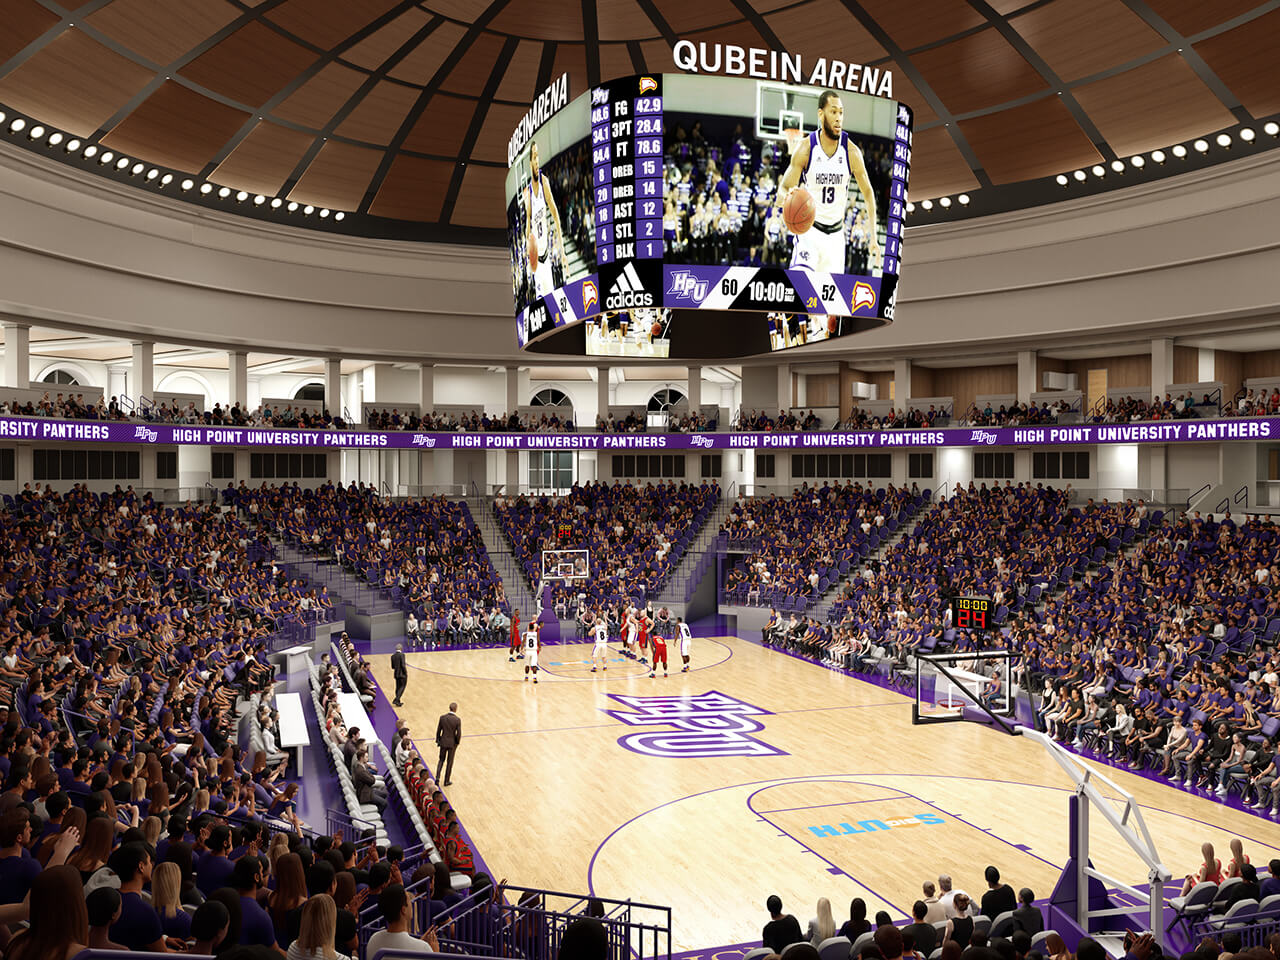 About The Qubein Arena And Conference Center Nido And